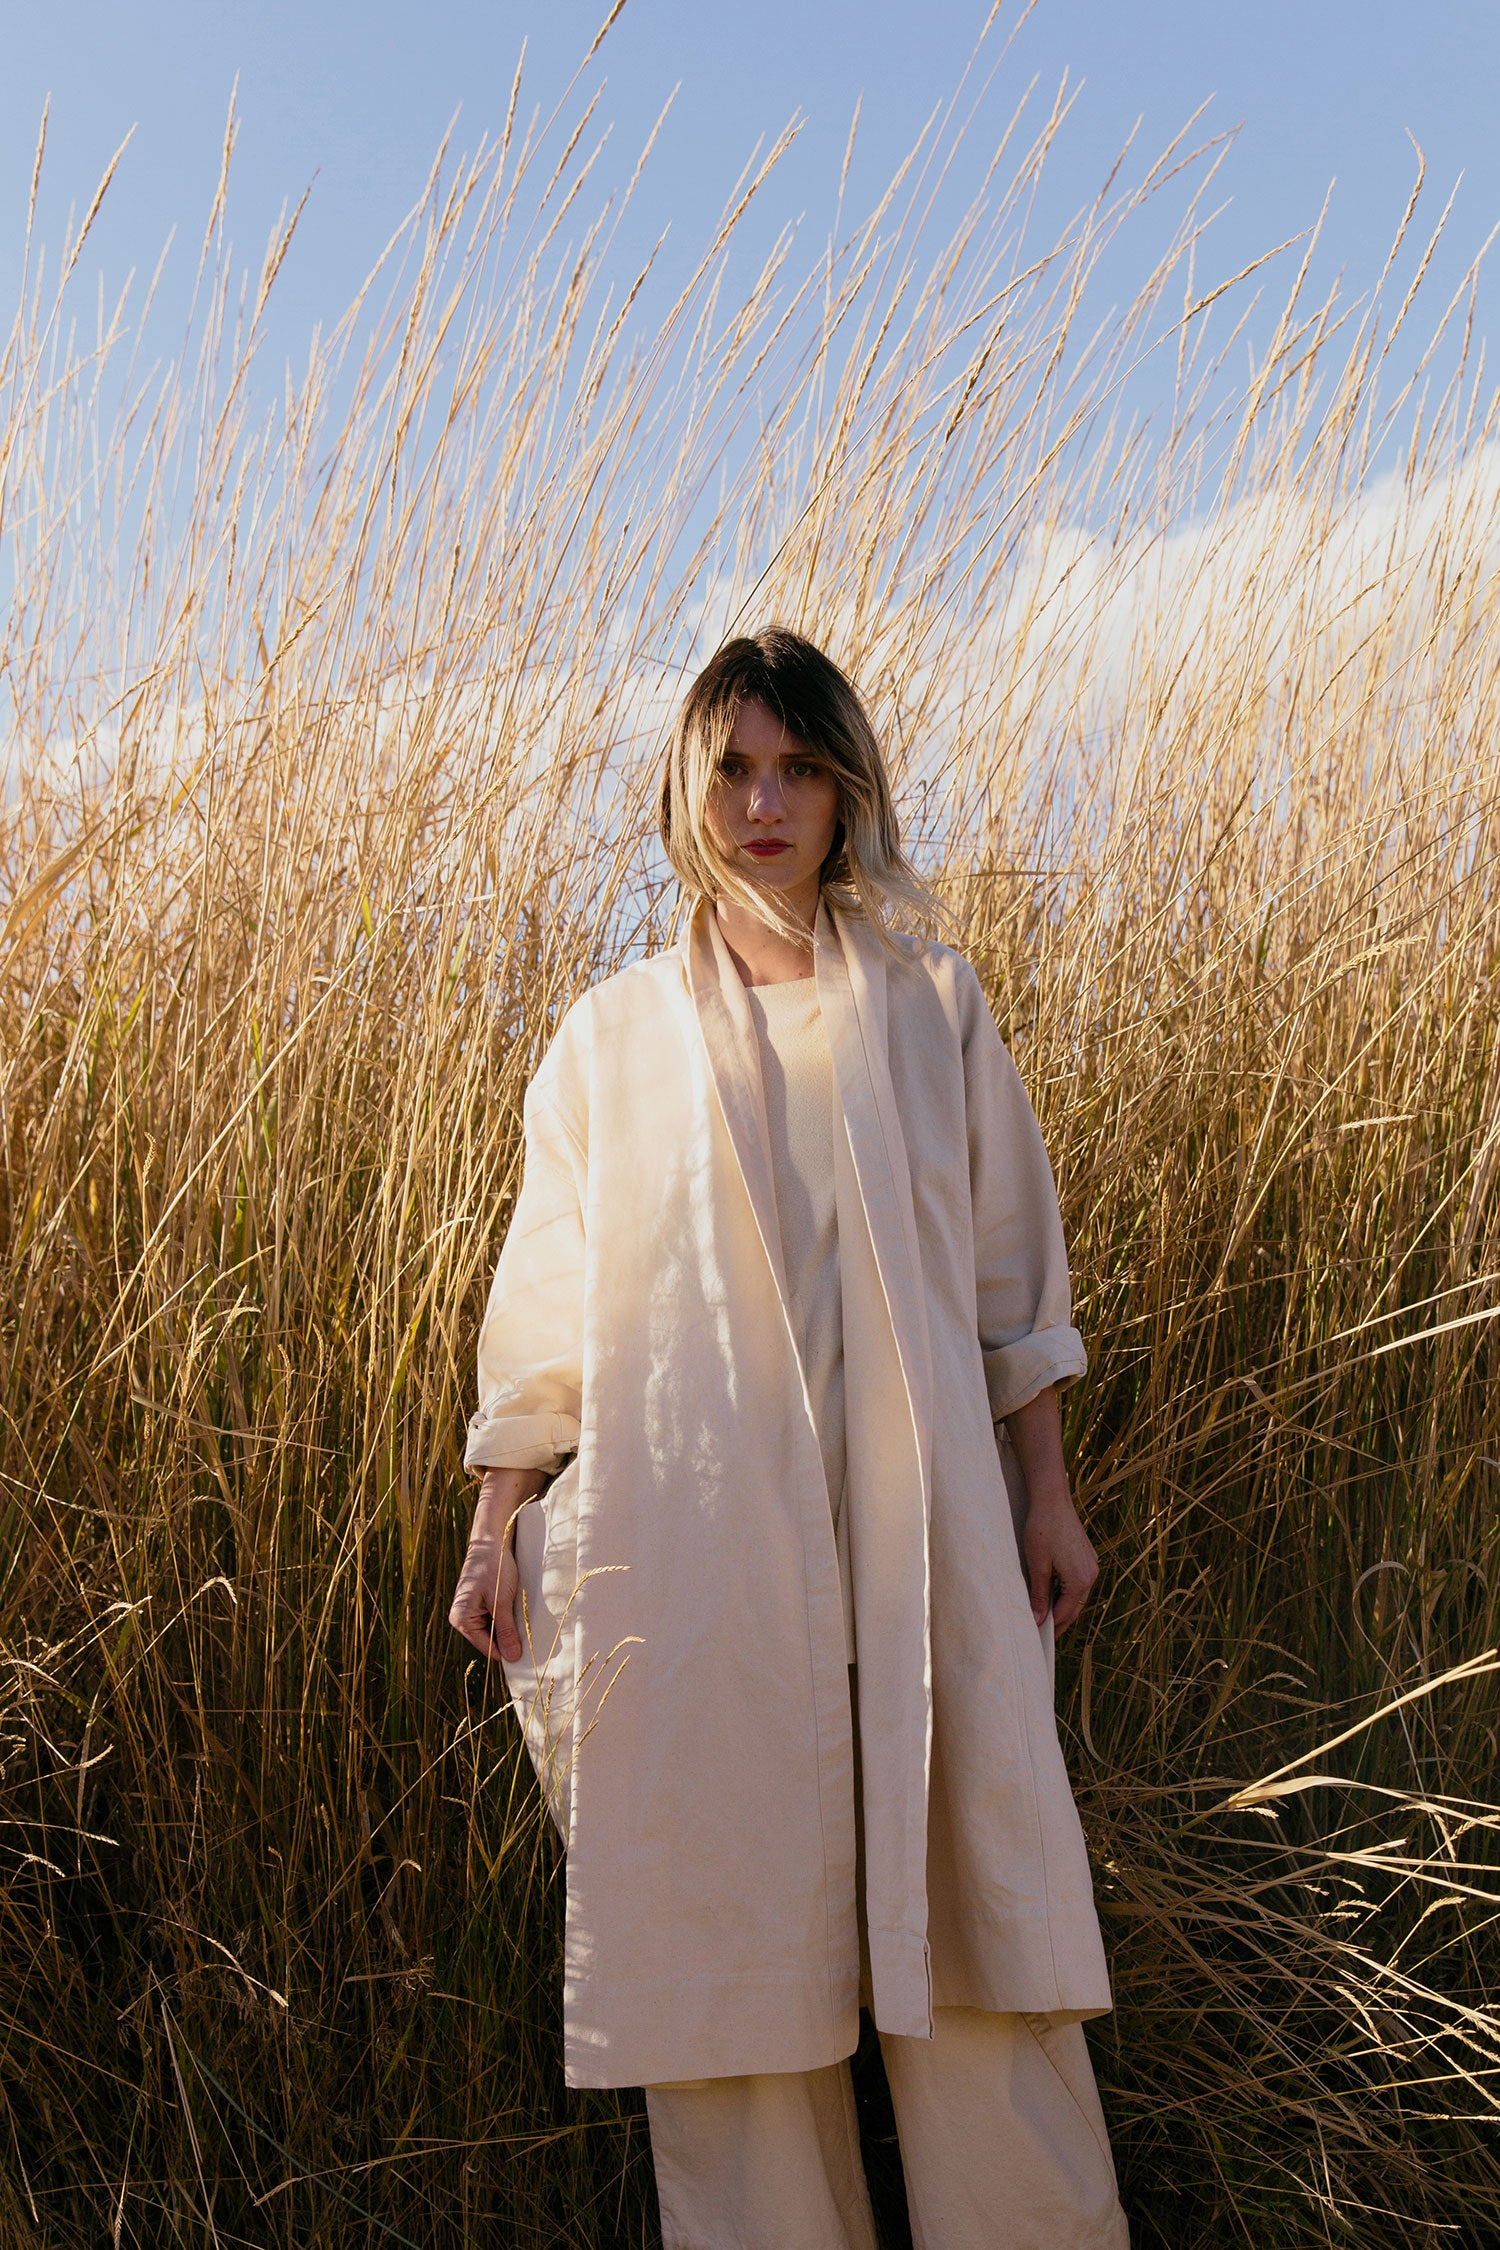 HOVER2_[a href=|/collections/cold-weather-collection/products/ida-trench-cotton-canvas|]Ida Trench [Natural Cotton Canvas][/a] + [a href=|/collections/cold-weather-collection/products/long-sleeve-harper-tunic-raw-silk-broadcloth|]Long Sleeve Harper Tunic [Eggshell Raw Silk Broadcloth][/a] + [a href=|/collections/cold-weather-collection/products/florence-pant-cotton-canvas|]Florence Pant [Natural Cotton Canvas][/a]